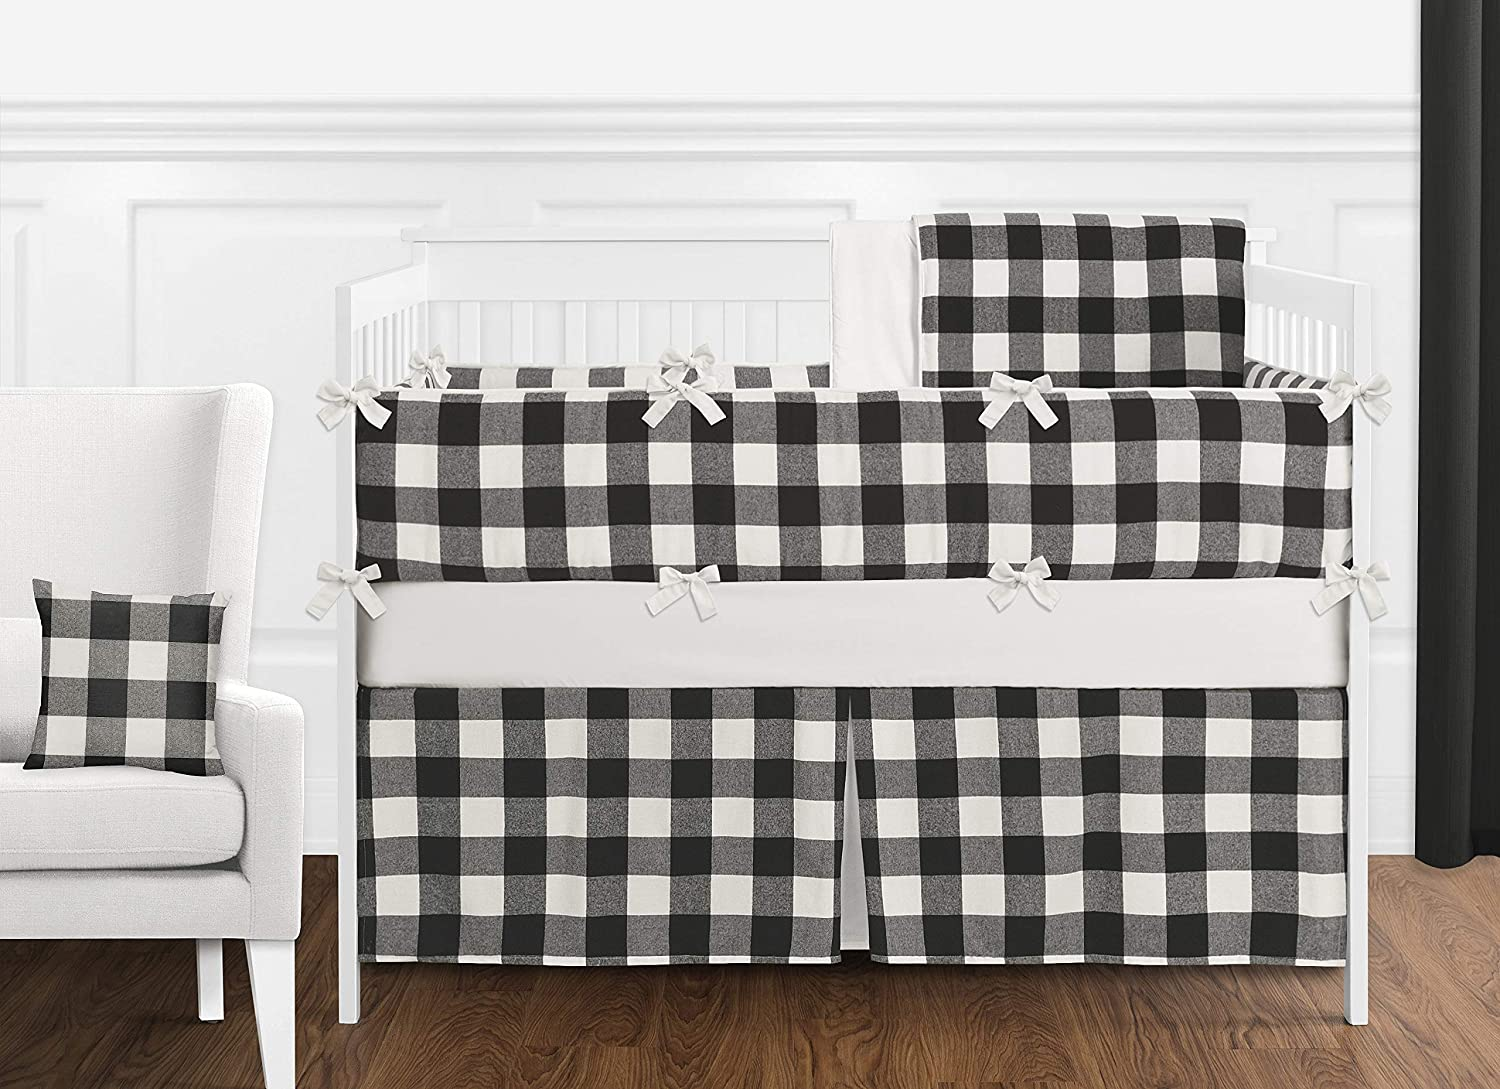 Sweet Jojo Designs Black and White Rustic Farmhouse Woodland Flannel Unisex Boy or Girl Baby or Toddler Fitted Crib Sheet for Buffalo Plaid Check Collection Country Lumberjack